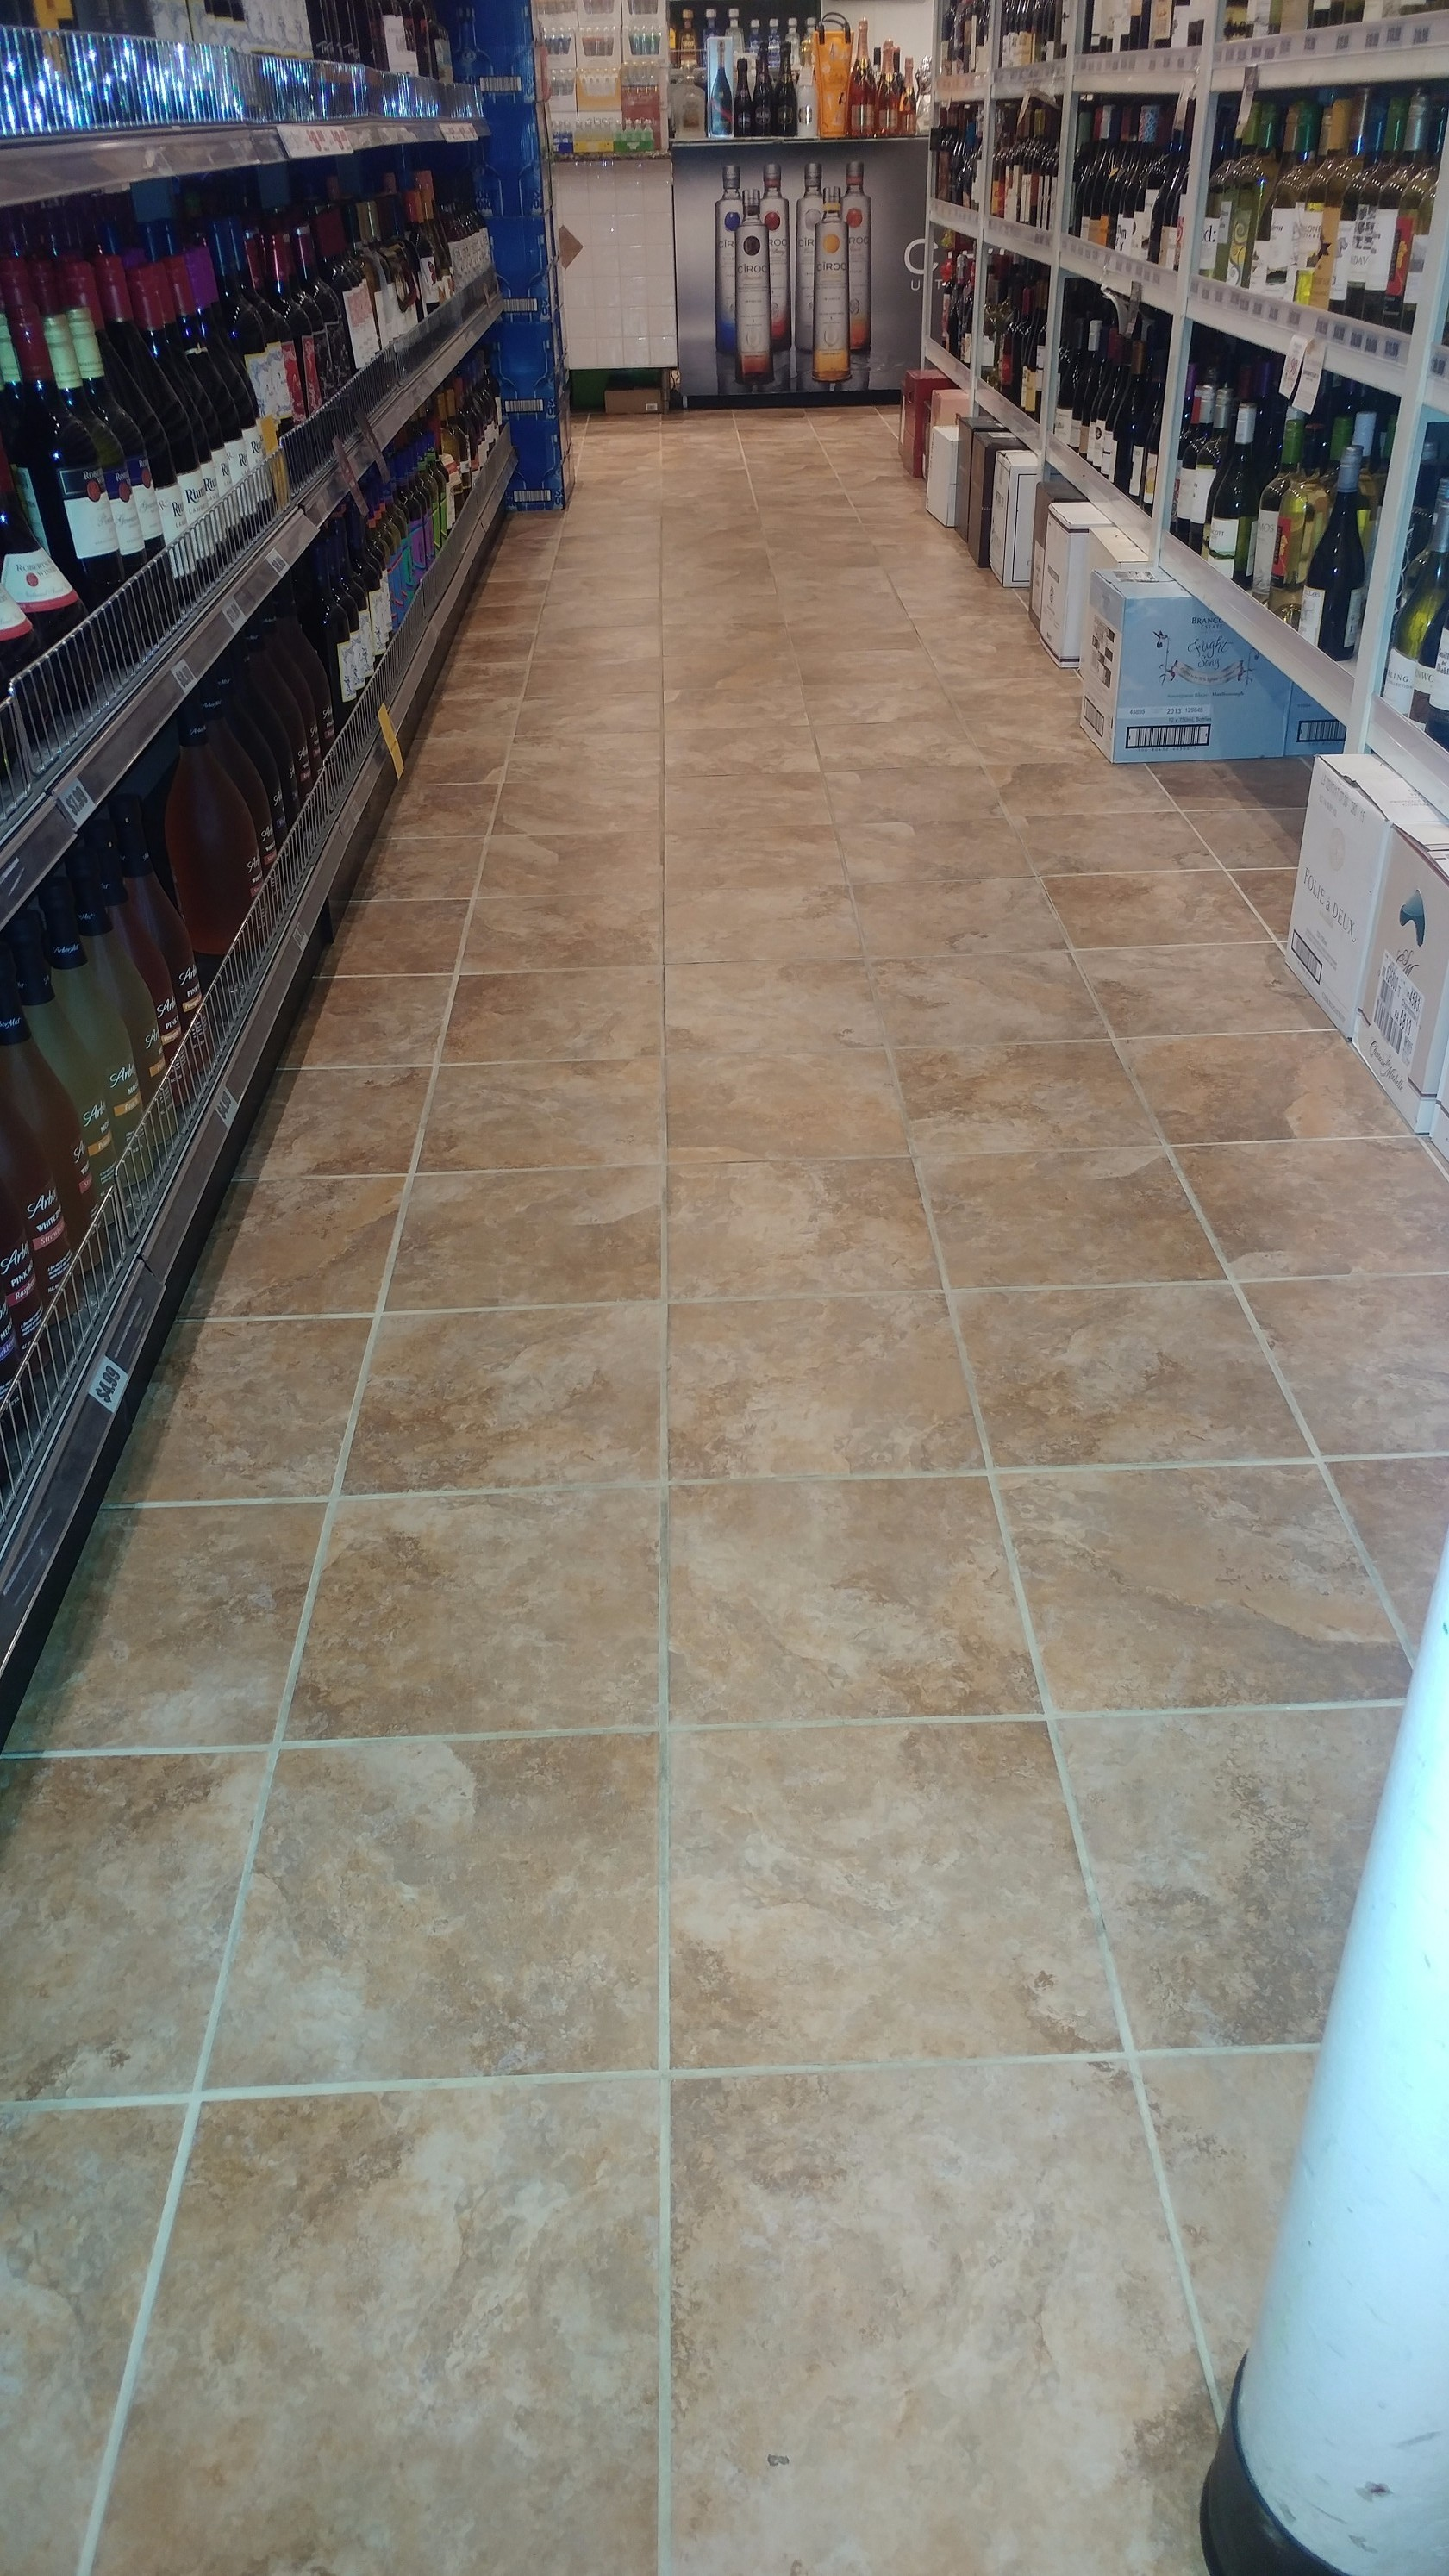 Tile Grout Cleaning Services Ceramic Tile Cleanng Sealing - Ceramic tile cleaning company